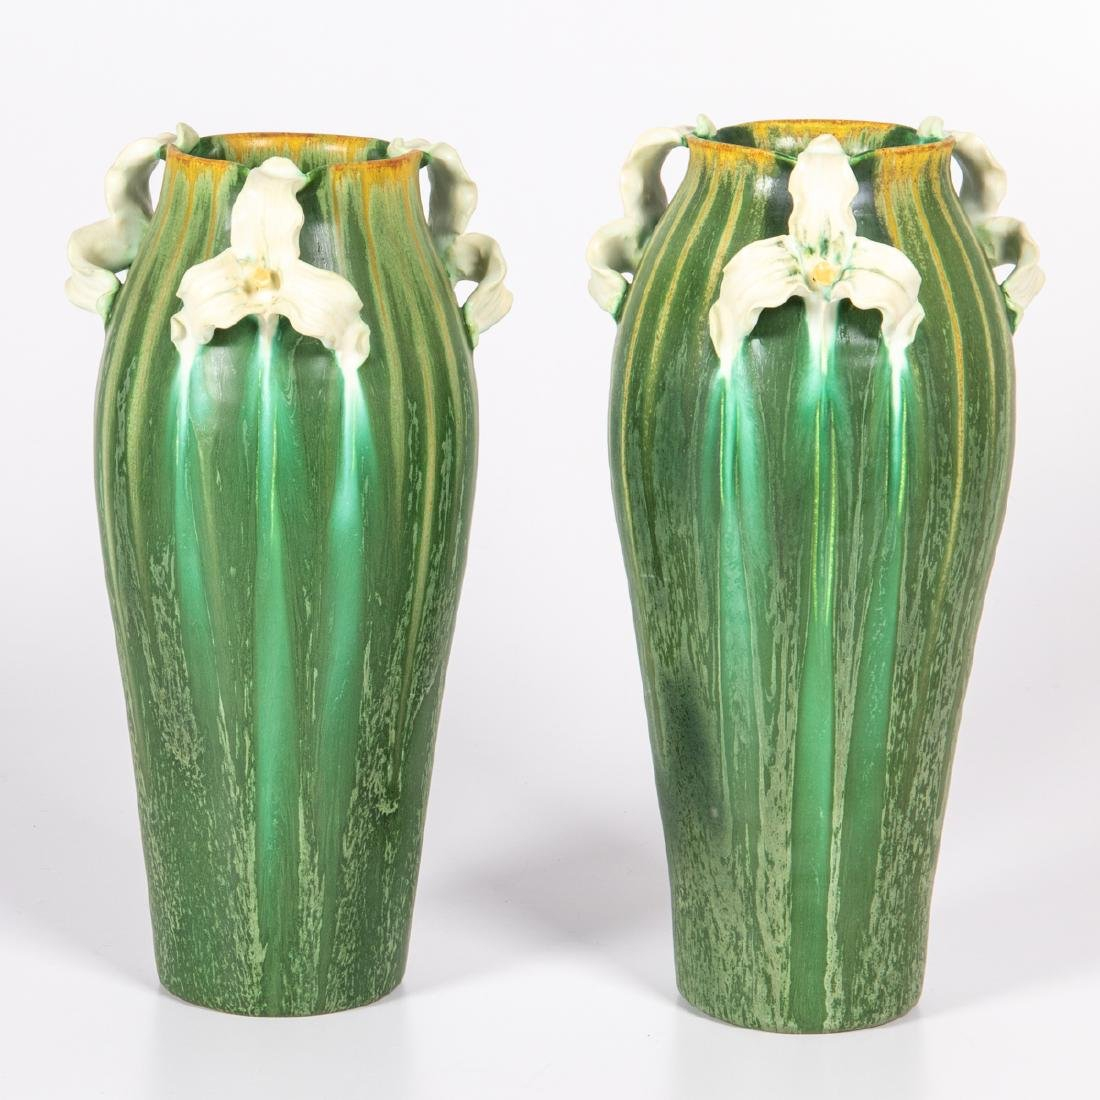 Two Ephraim Pottery Vases by Laura Klein, 20th Century,